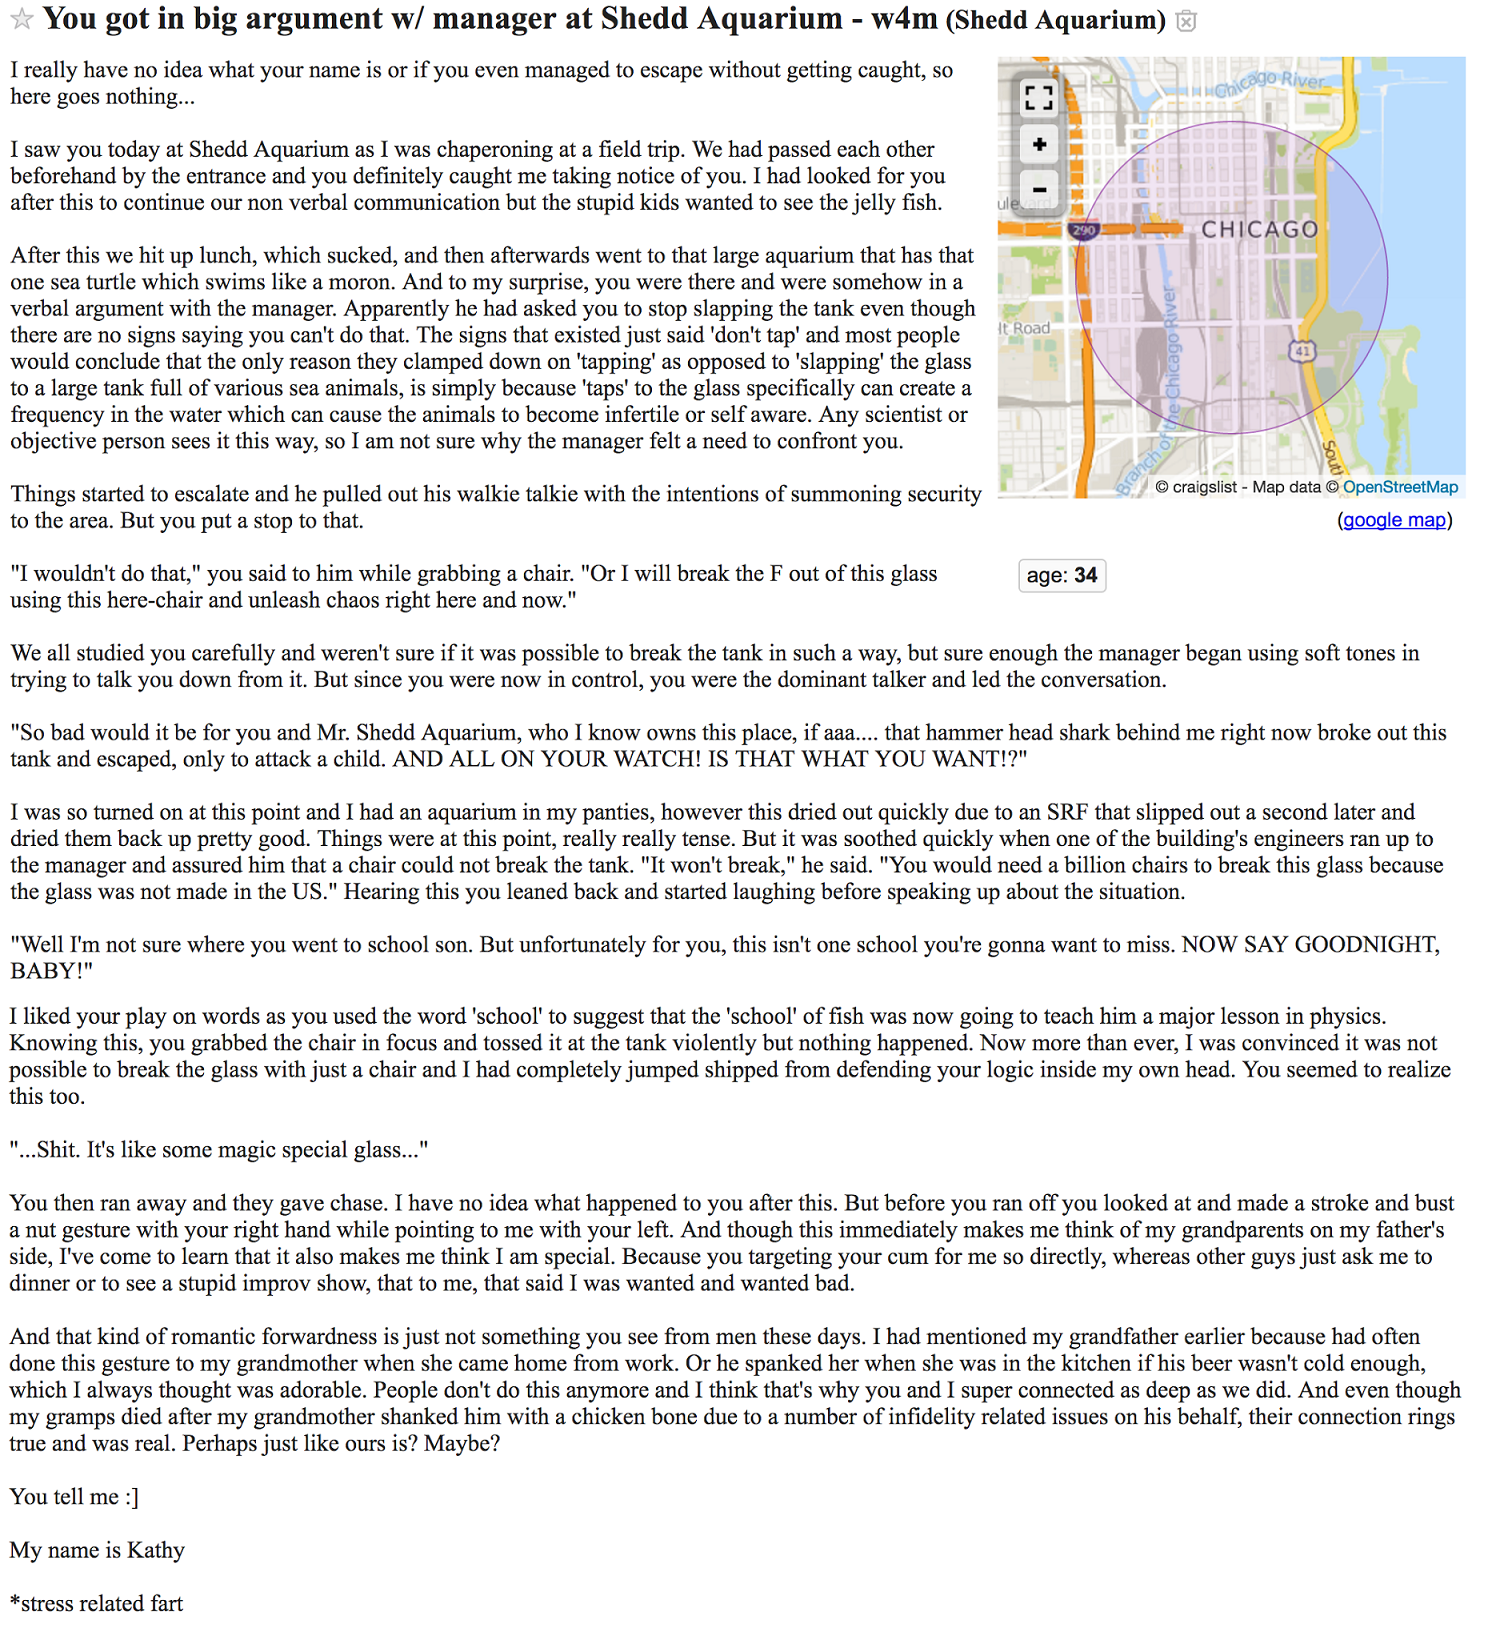 Places to post missed connections like craigslist